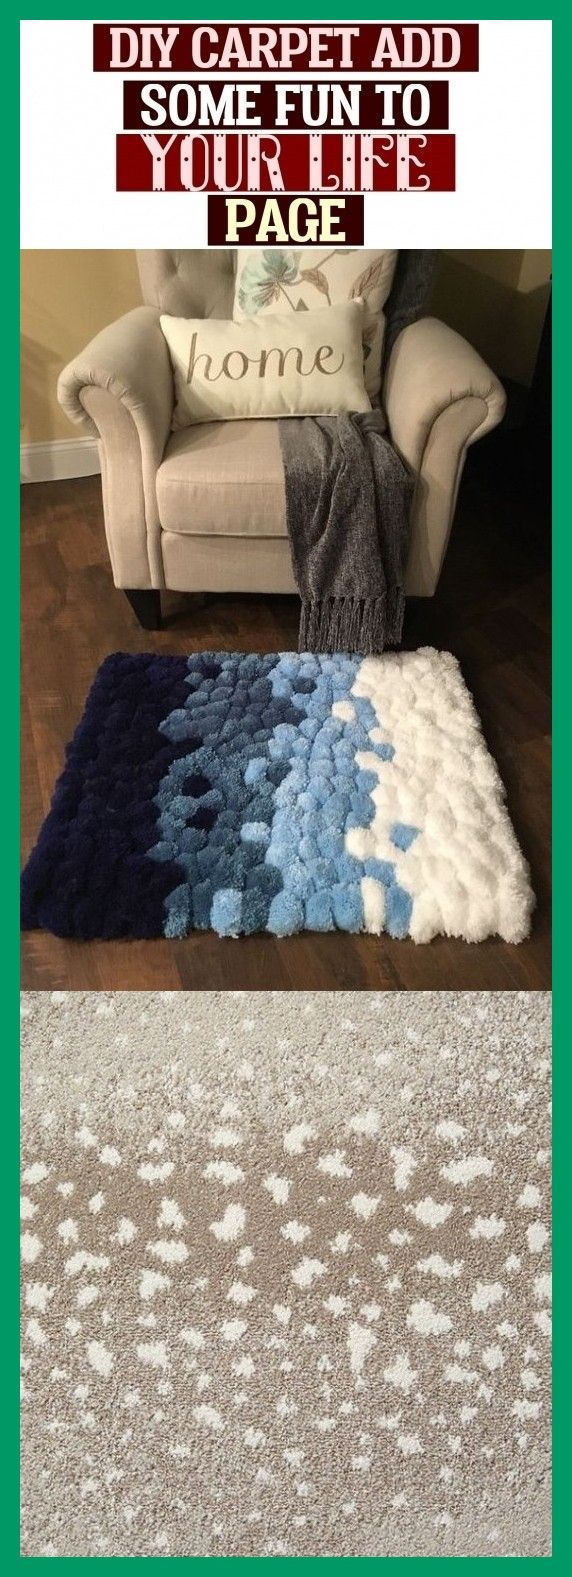 Diy Carpet Add Some Fun To Your Life - Page